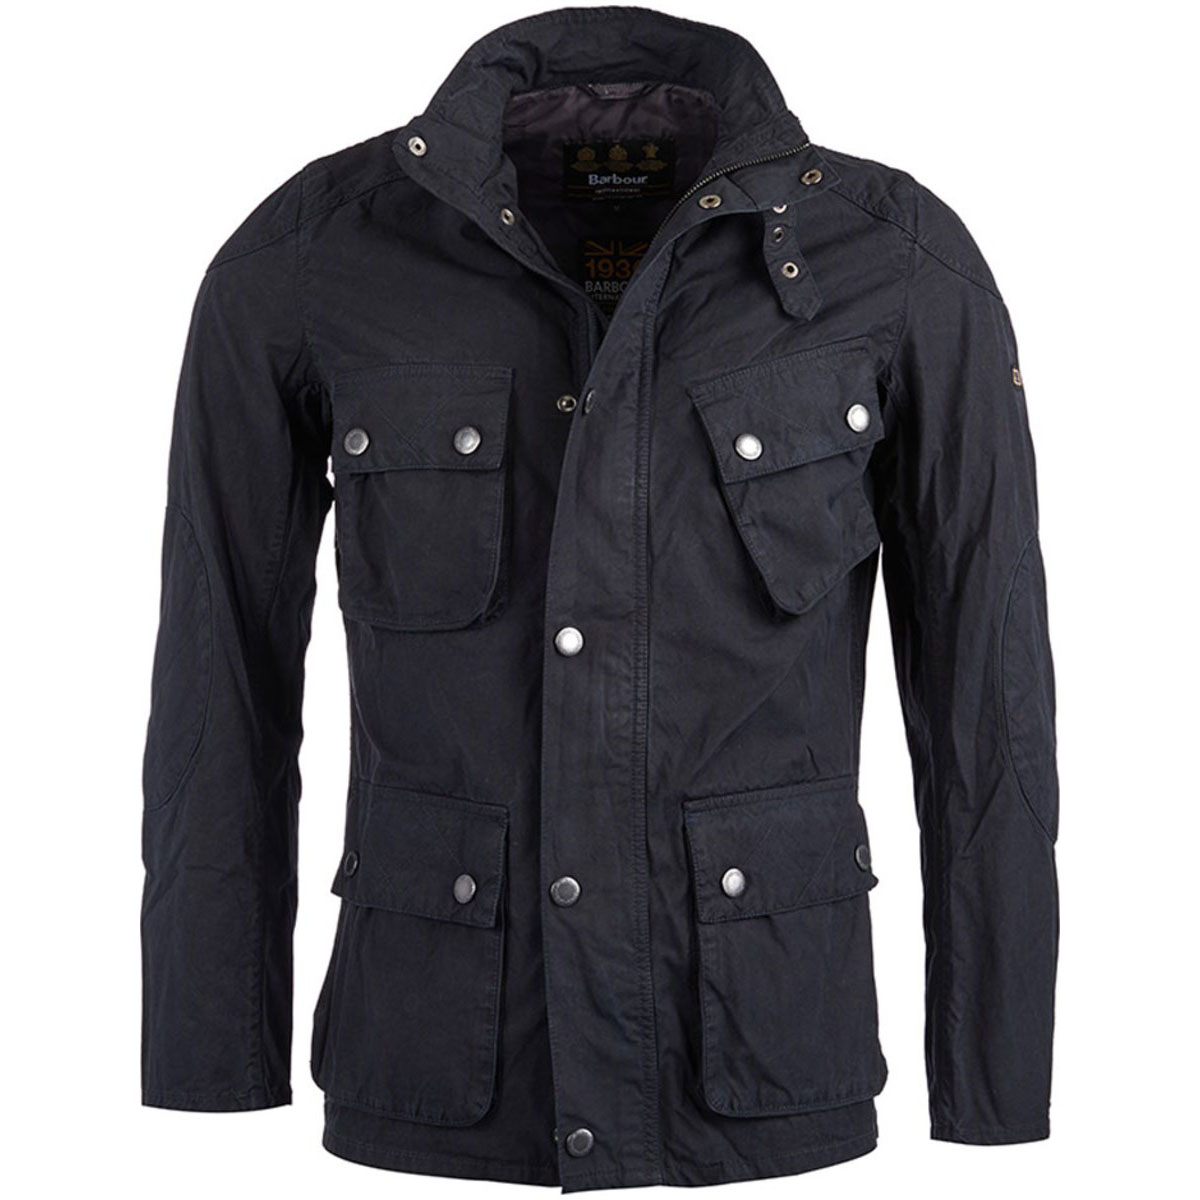 B.Intl Smokey Jacket Navy Barbour International: From the Ride to the Sun collection